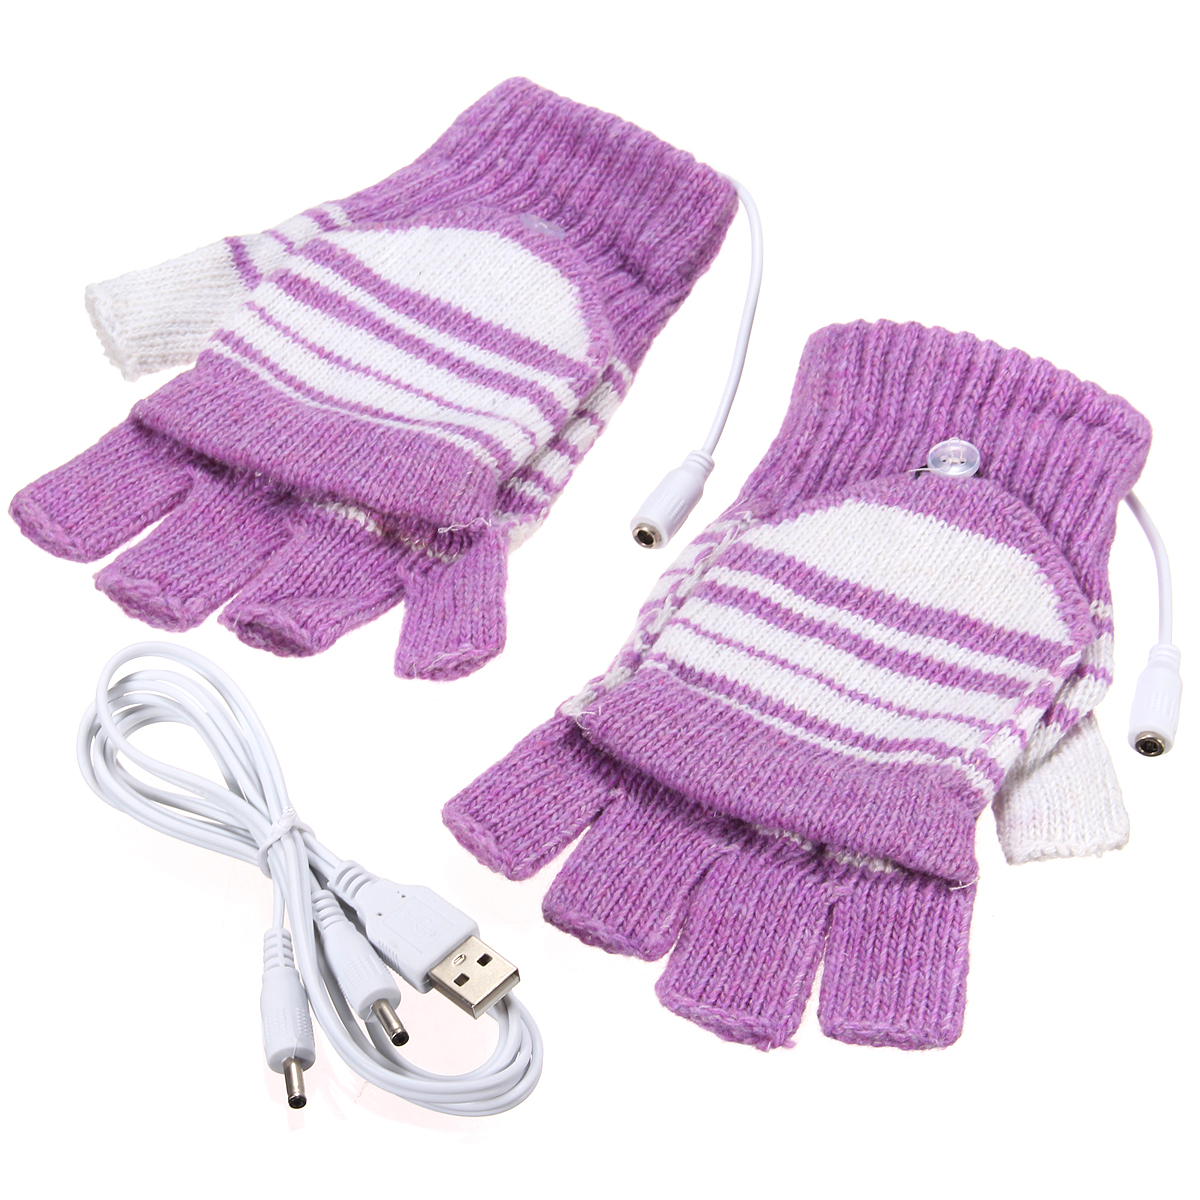 2pair Cold Weather Winter Knitted Gloves USB Heated Warmer Gloves for Women Men Best Winter Gift